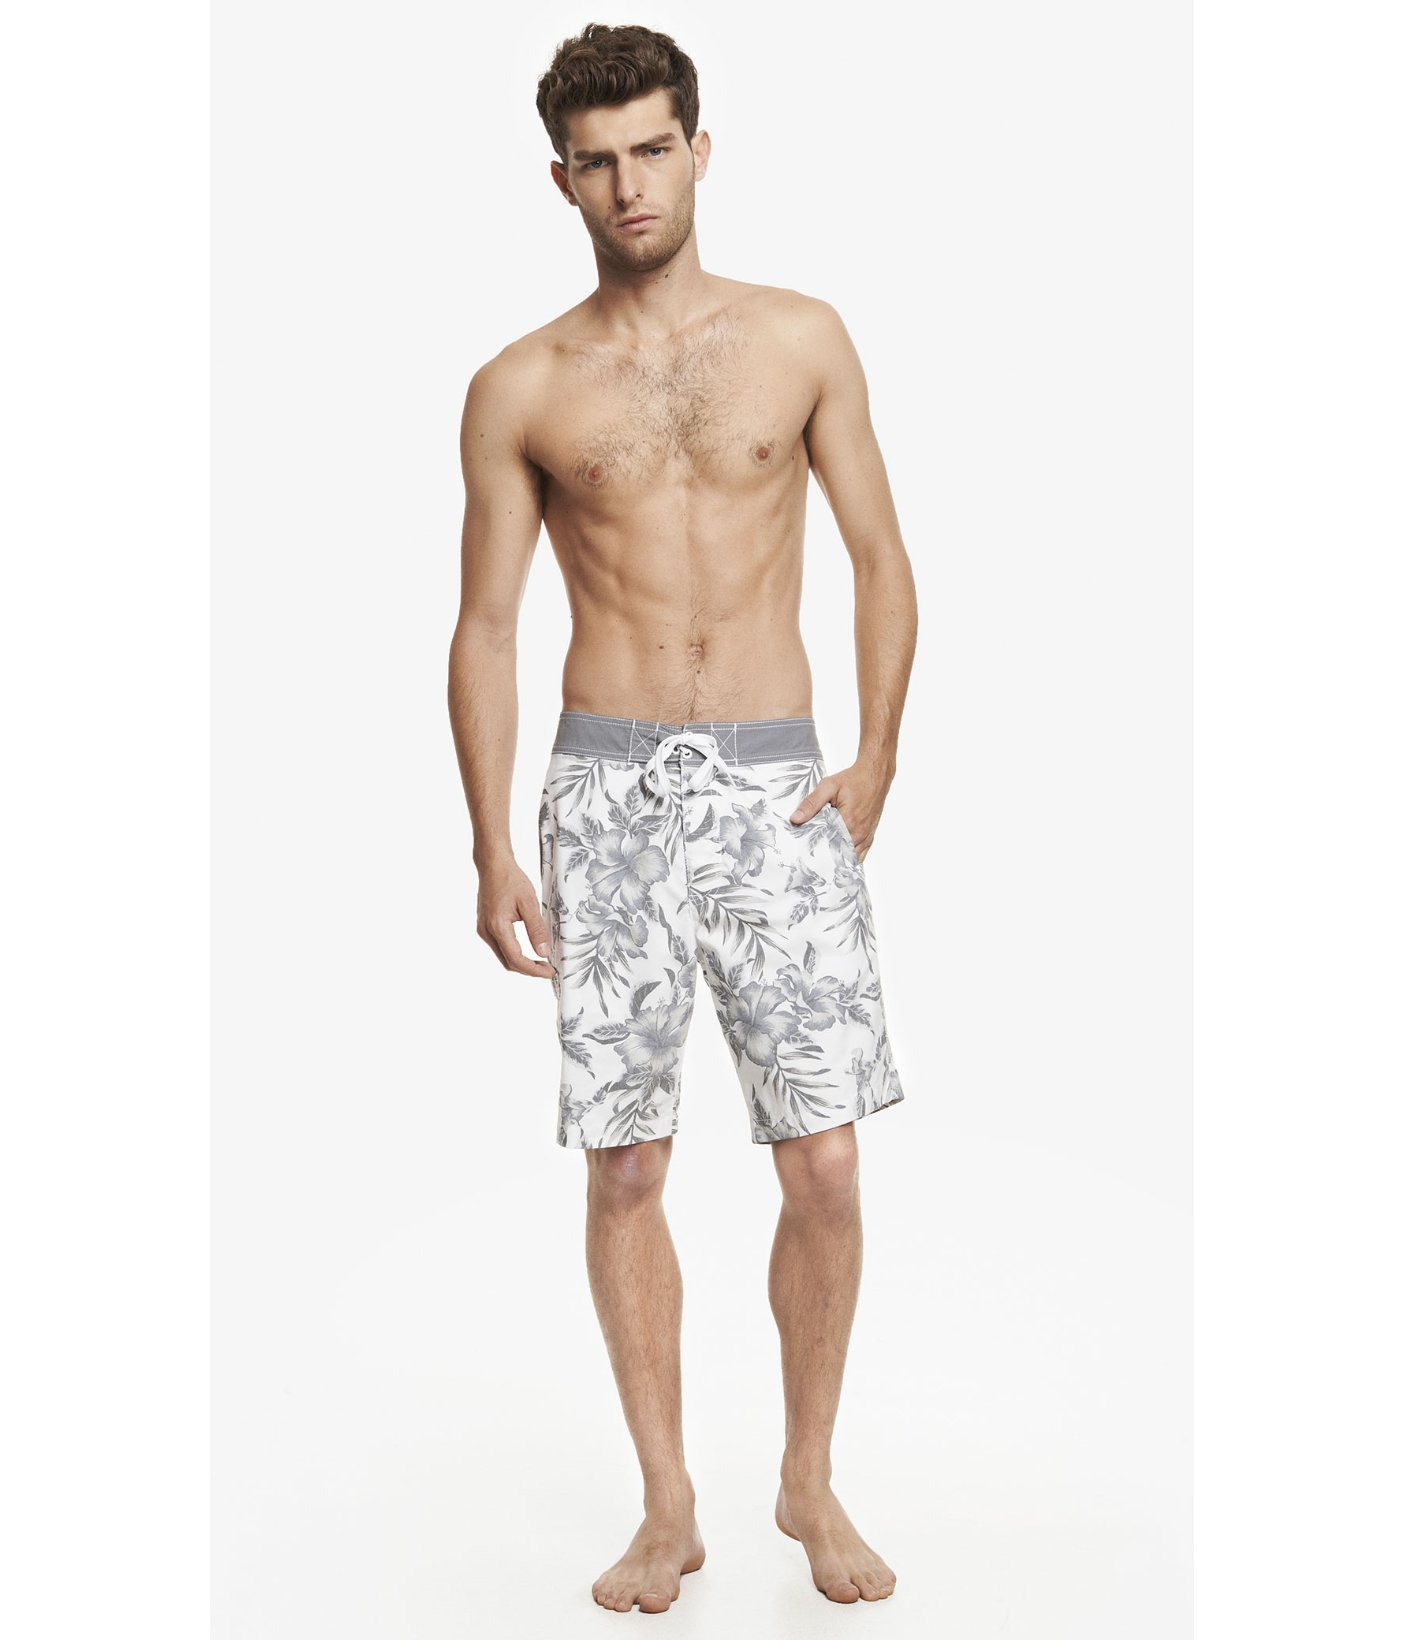 851be98120 Lyst - Express 9 Inch Hibiscus Print Board Shorts in White for Men